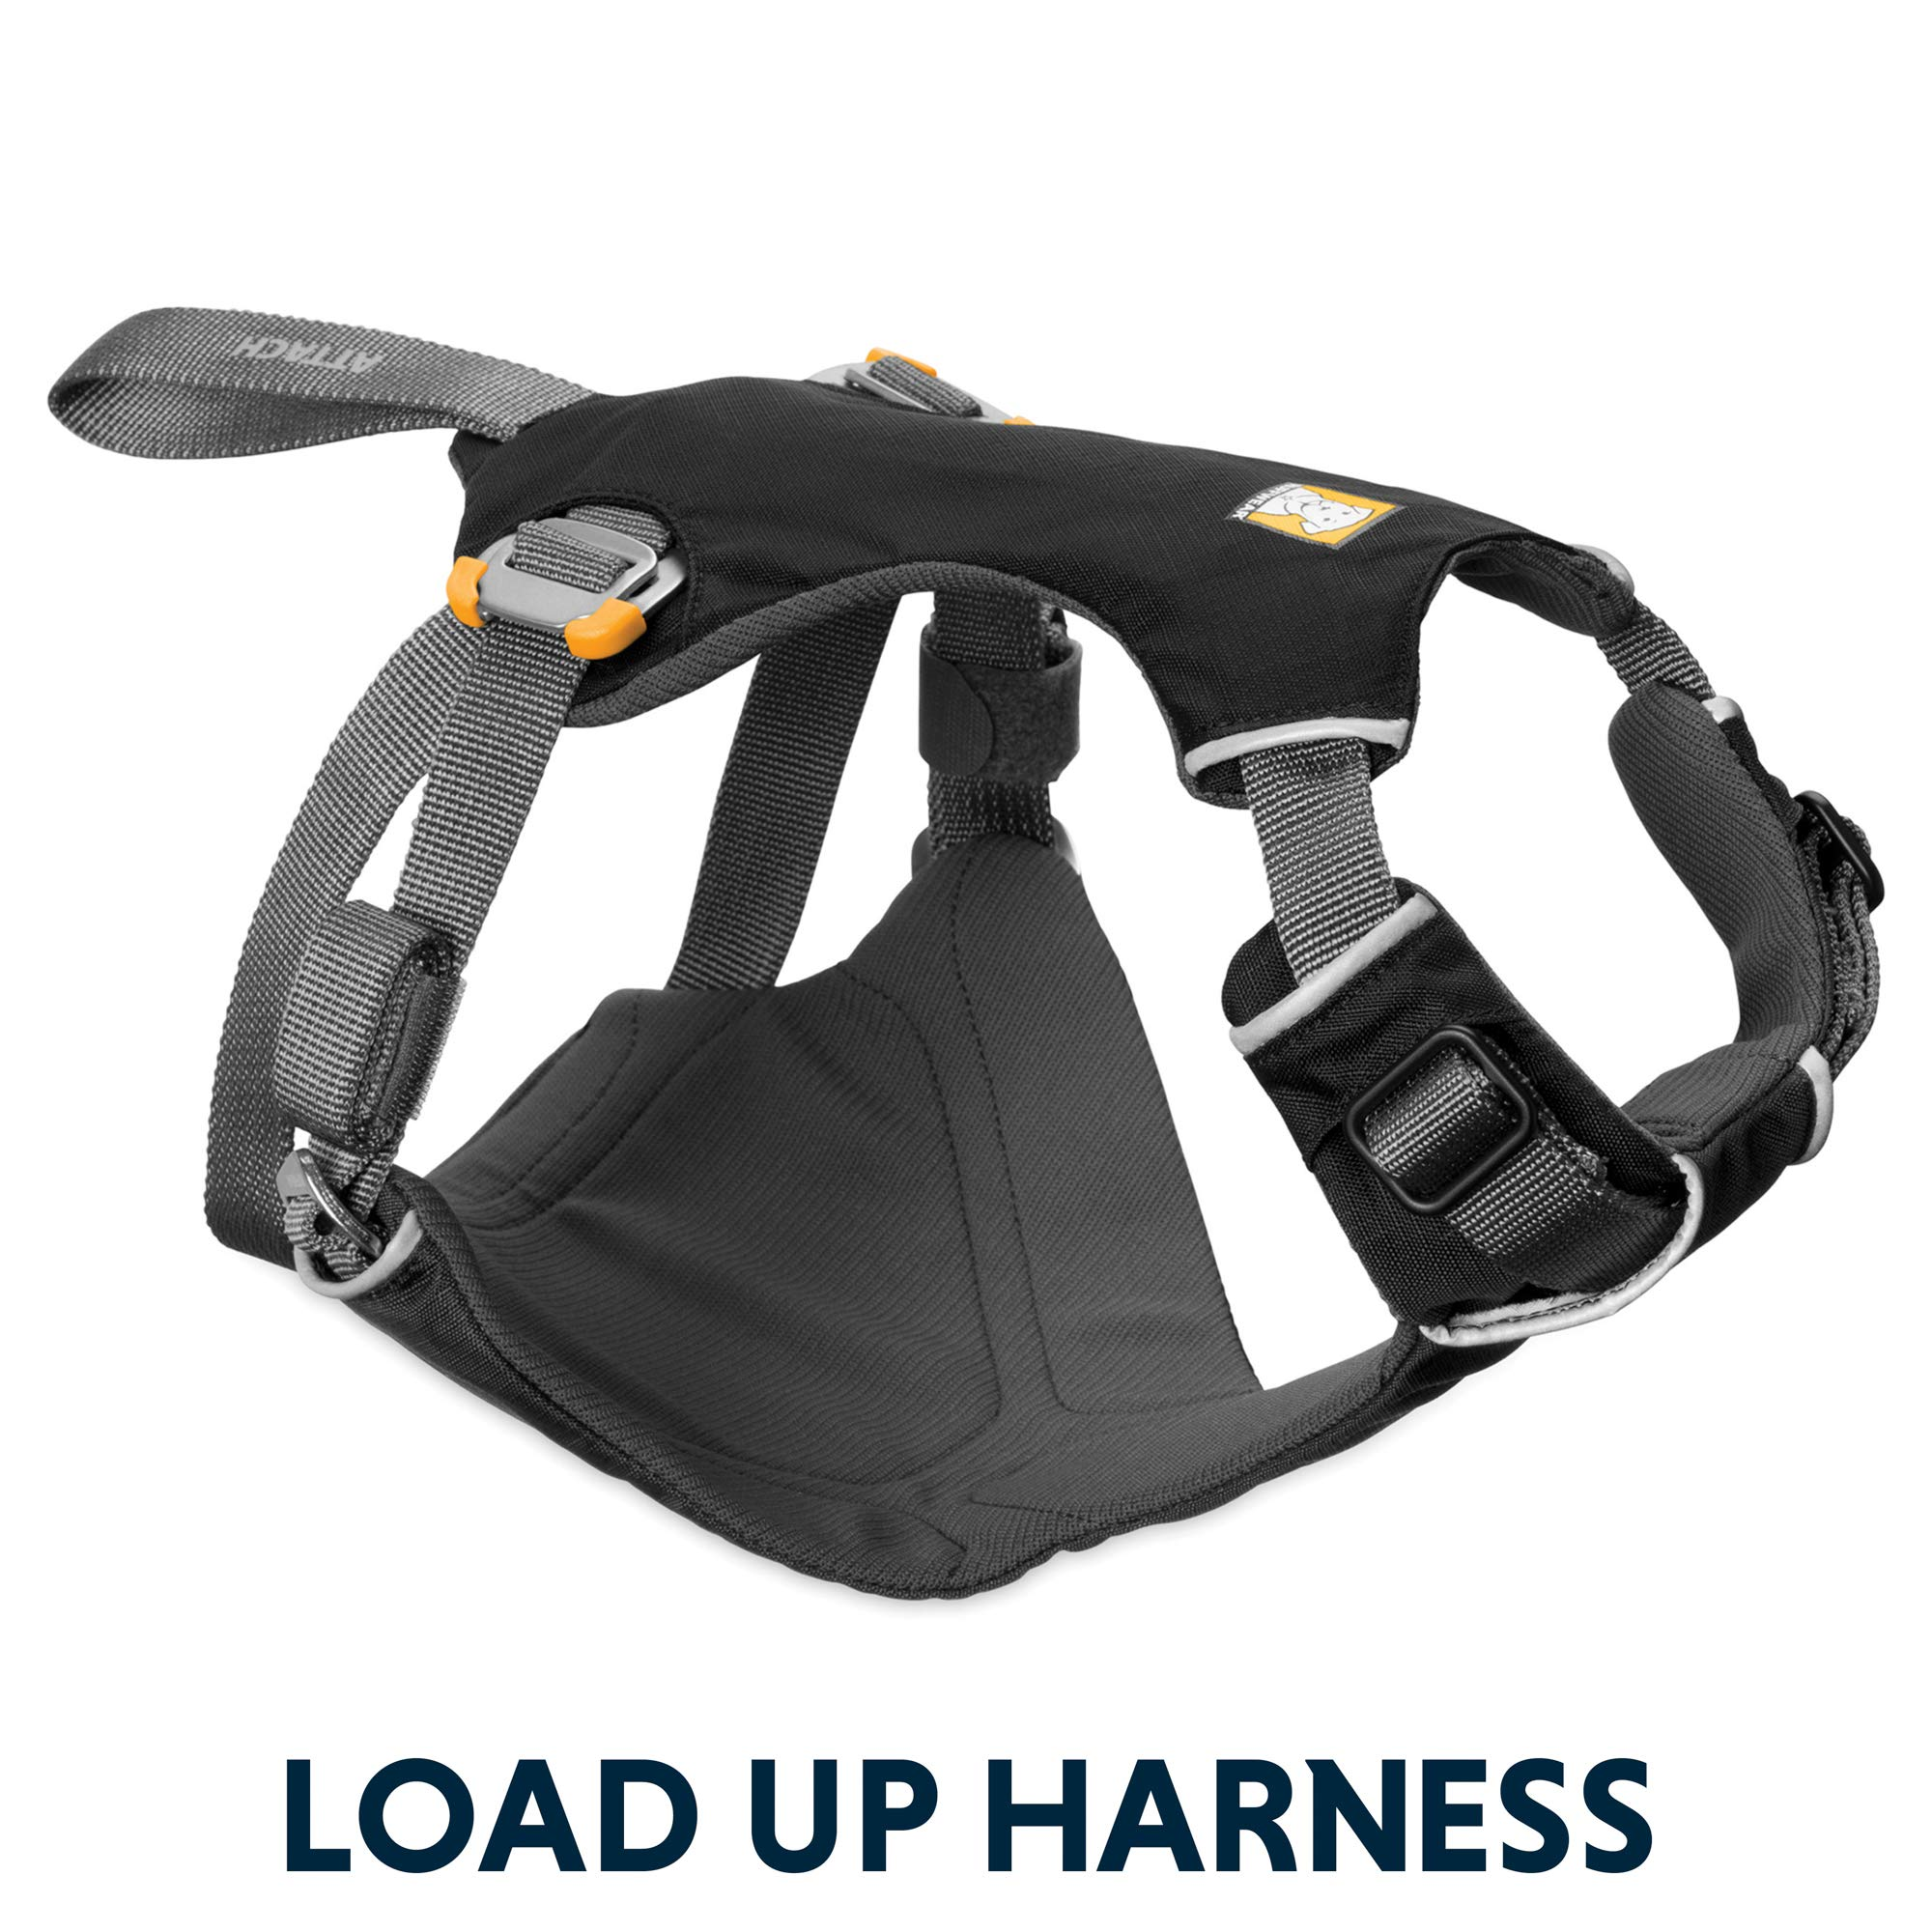 RUFFWEAR - Load Up, Dog Car Harness with Strength-Rated Hardware, Secure Vehicle Restraint, Universal Seat Belt Attachment, Obsidian Black, Medium by RUFFWEAR (Image #10)